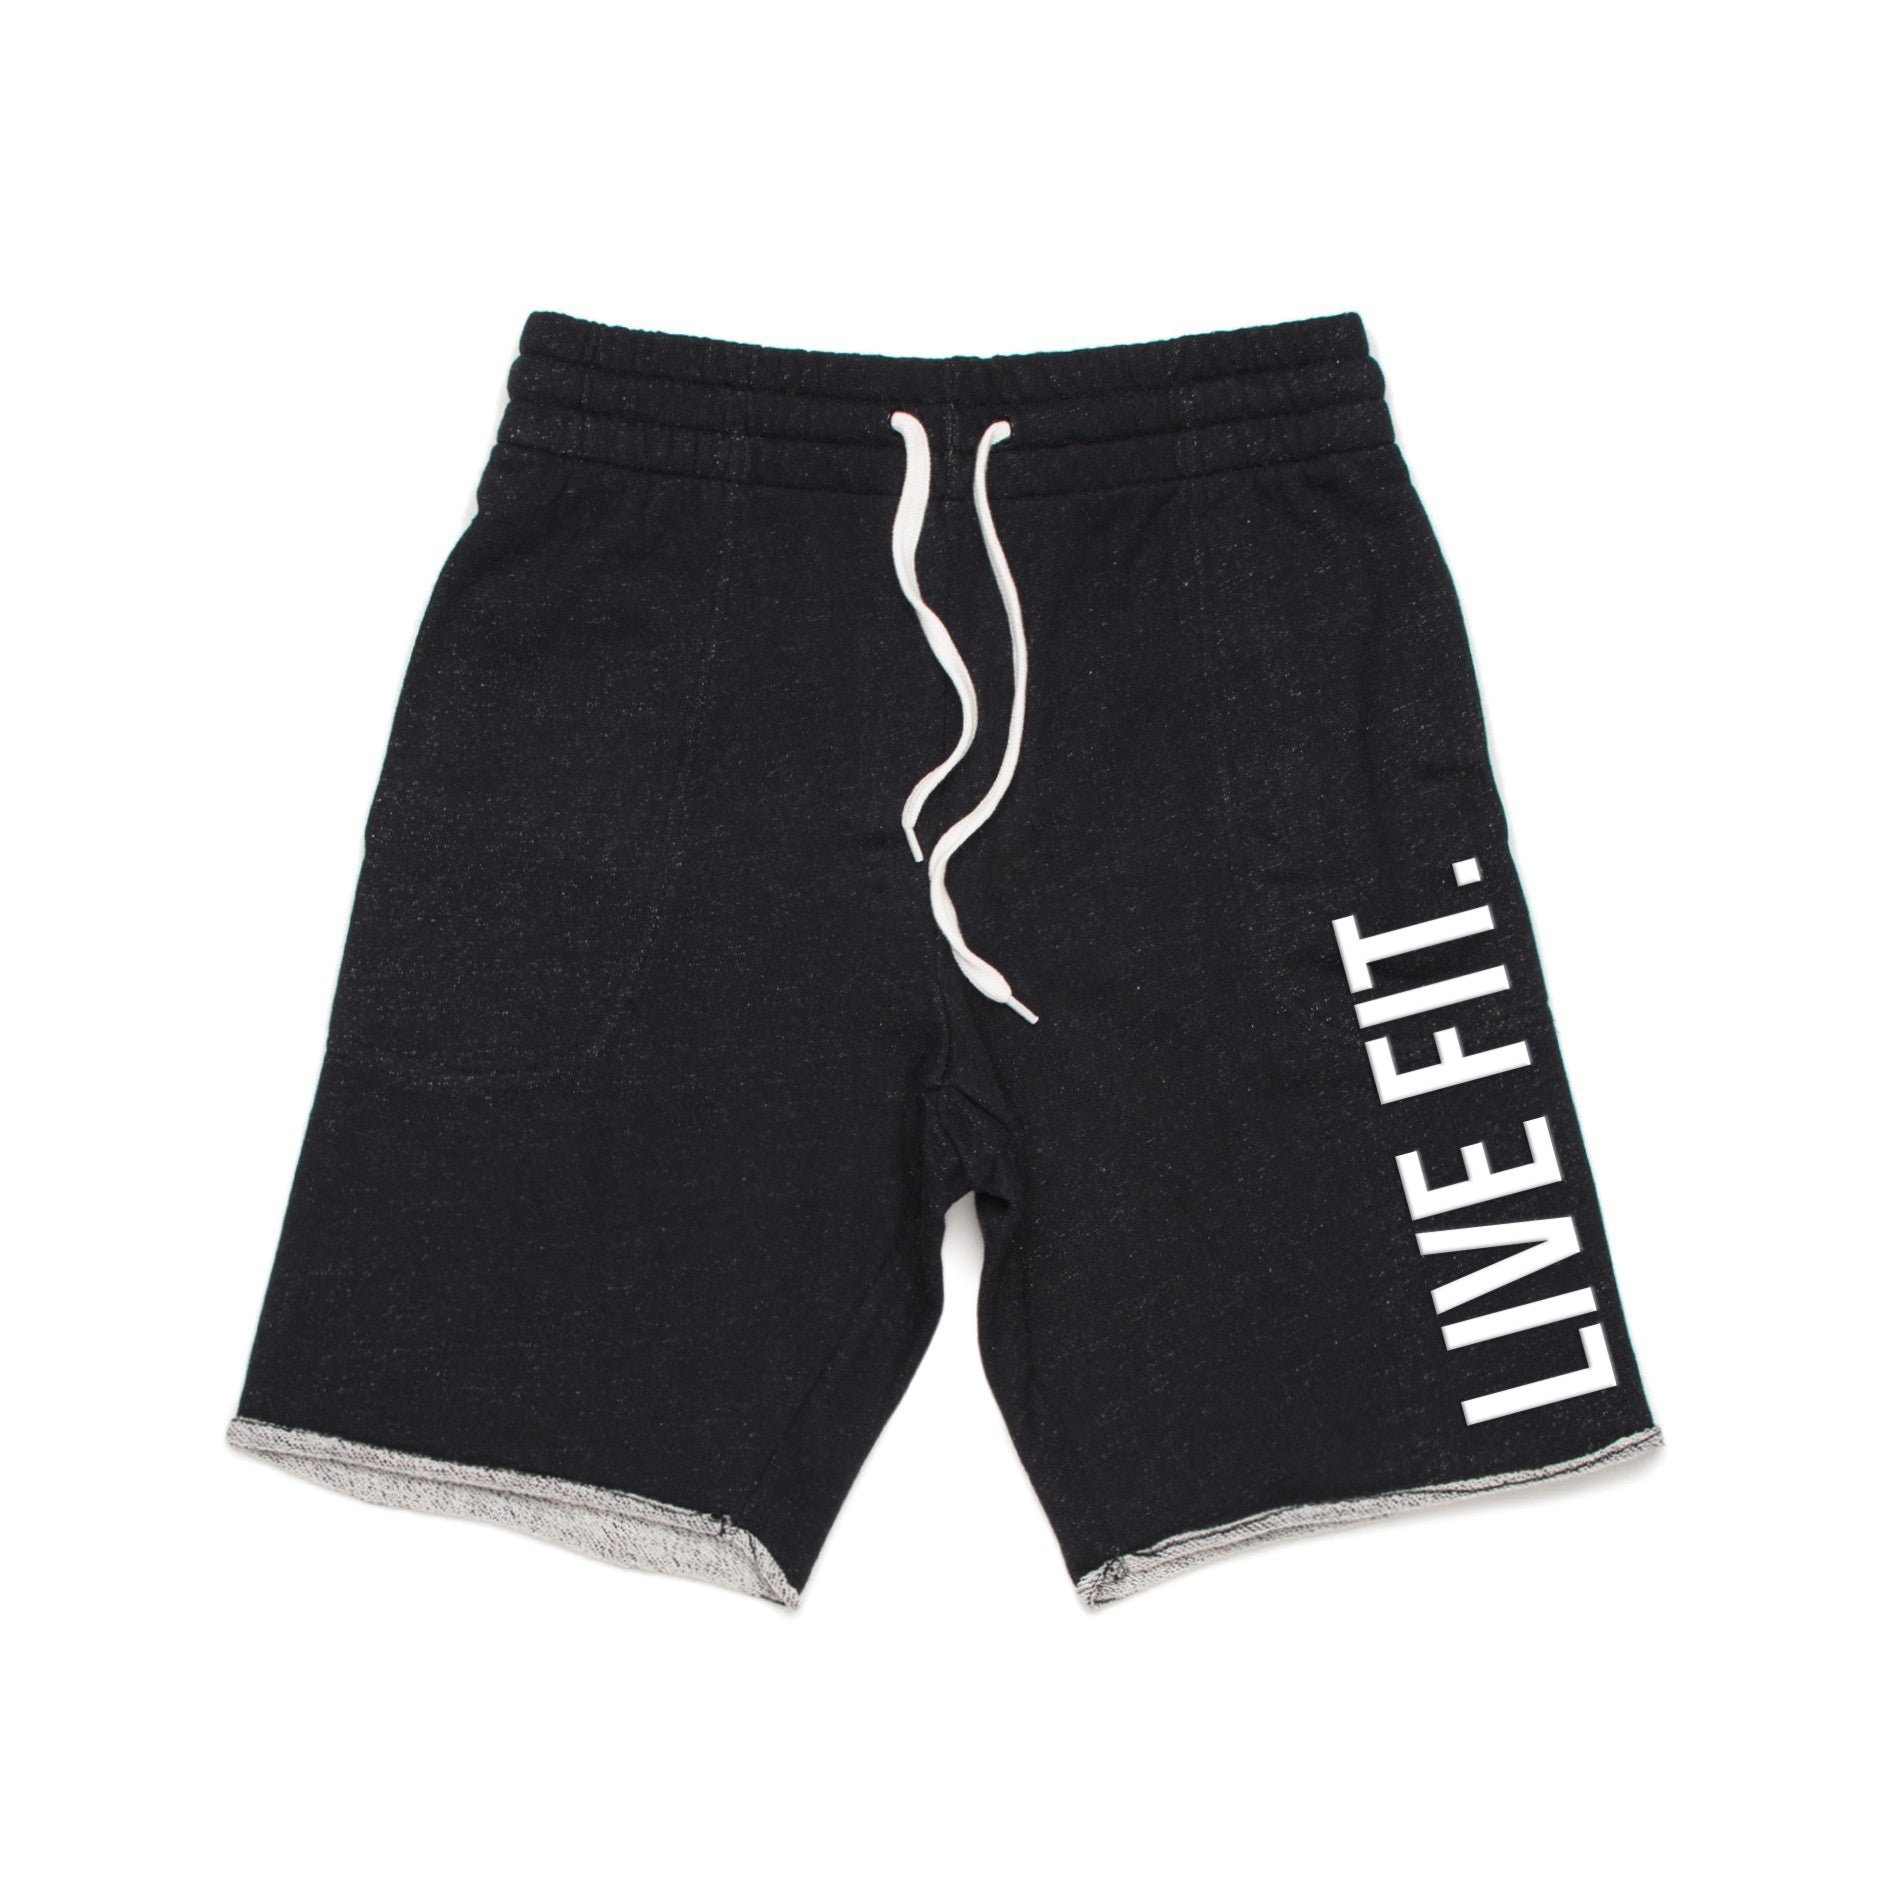 French Terry Live Fit short - Black Heather